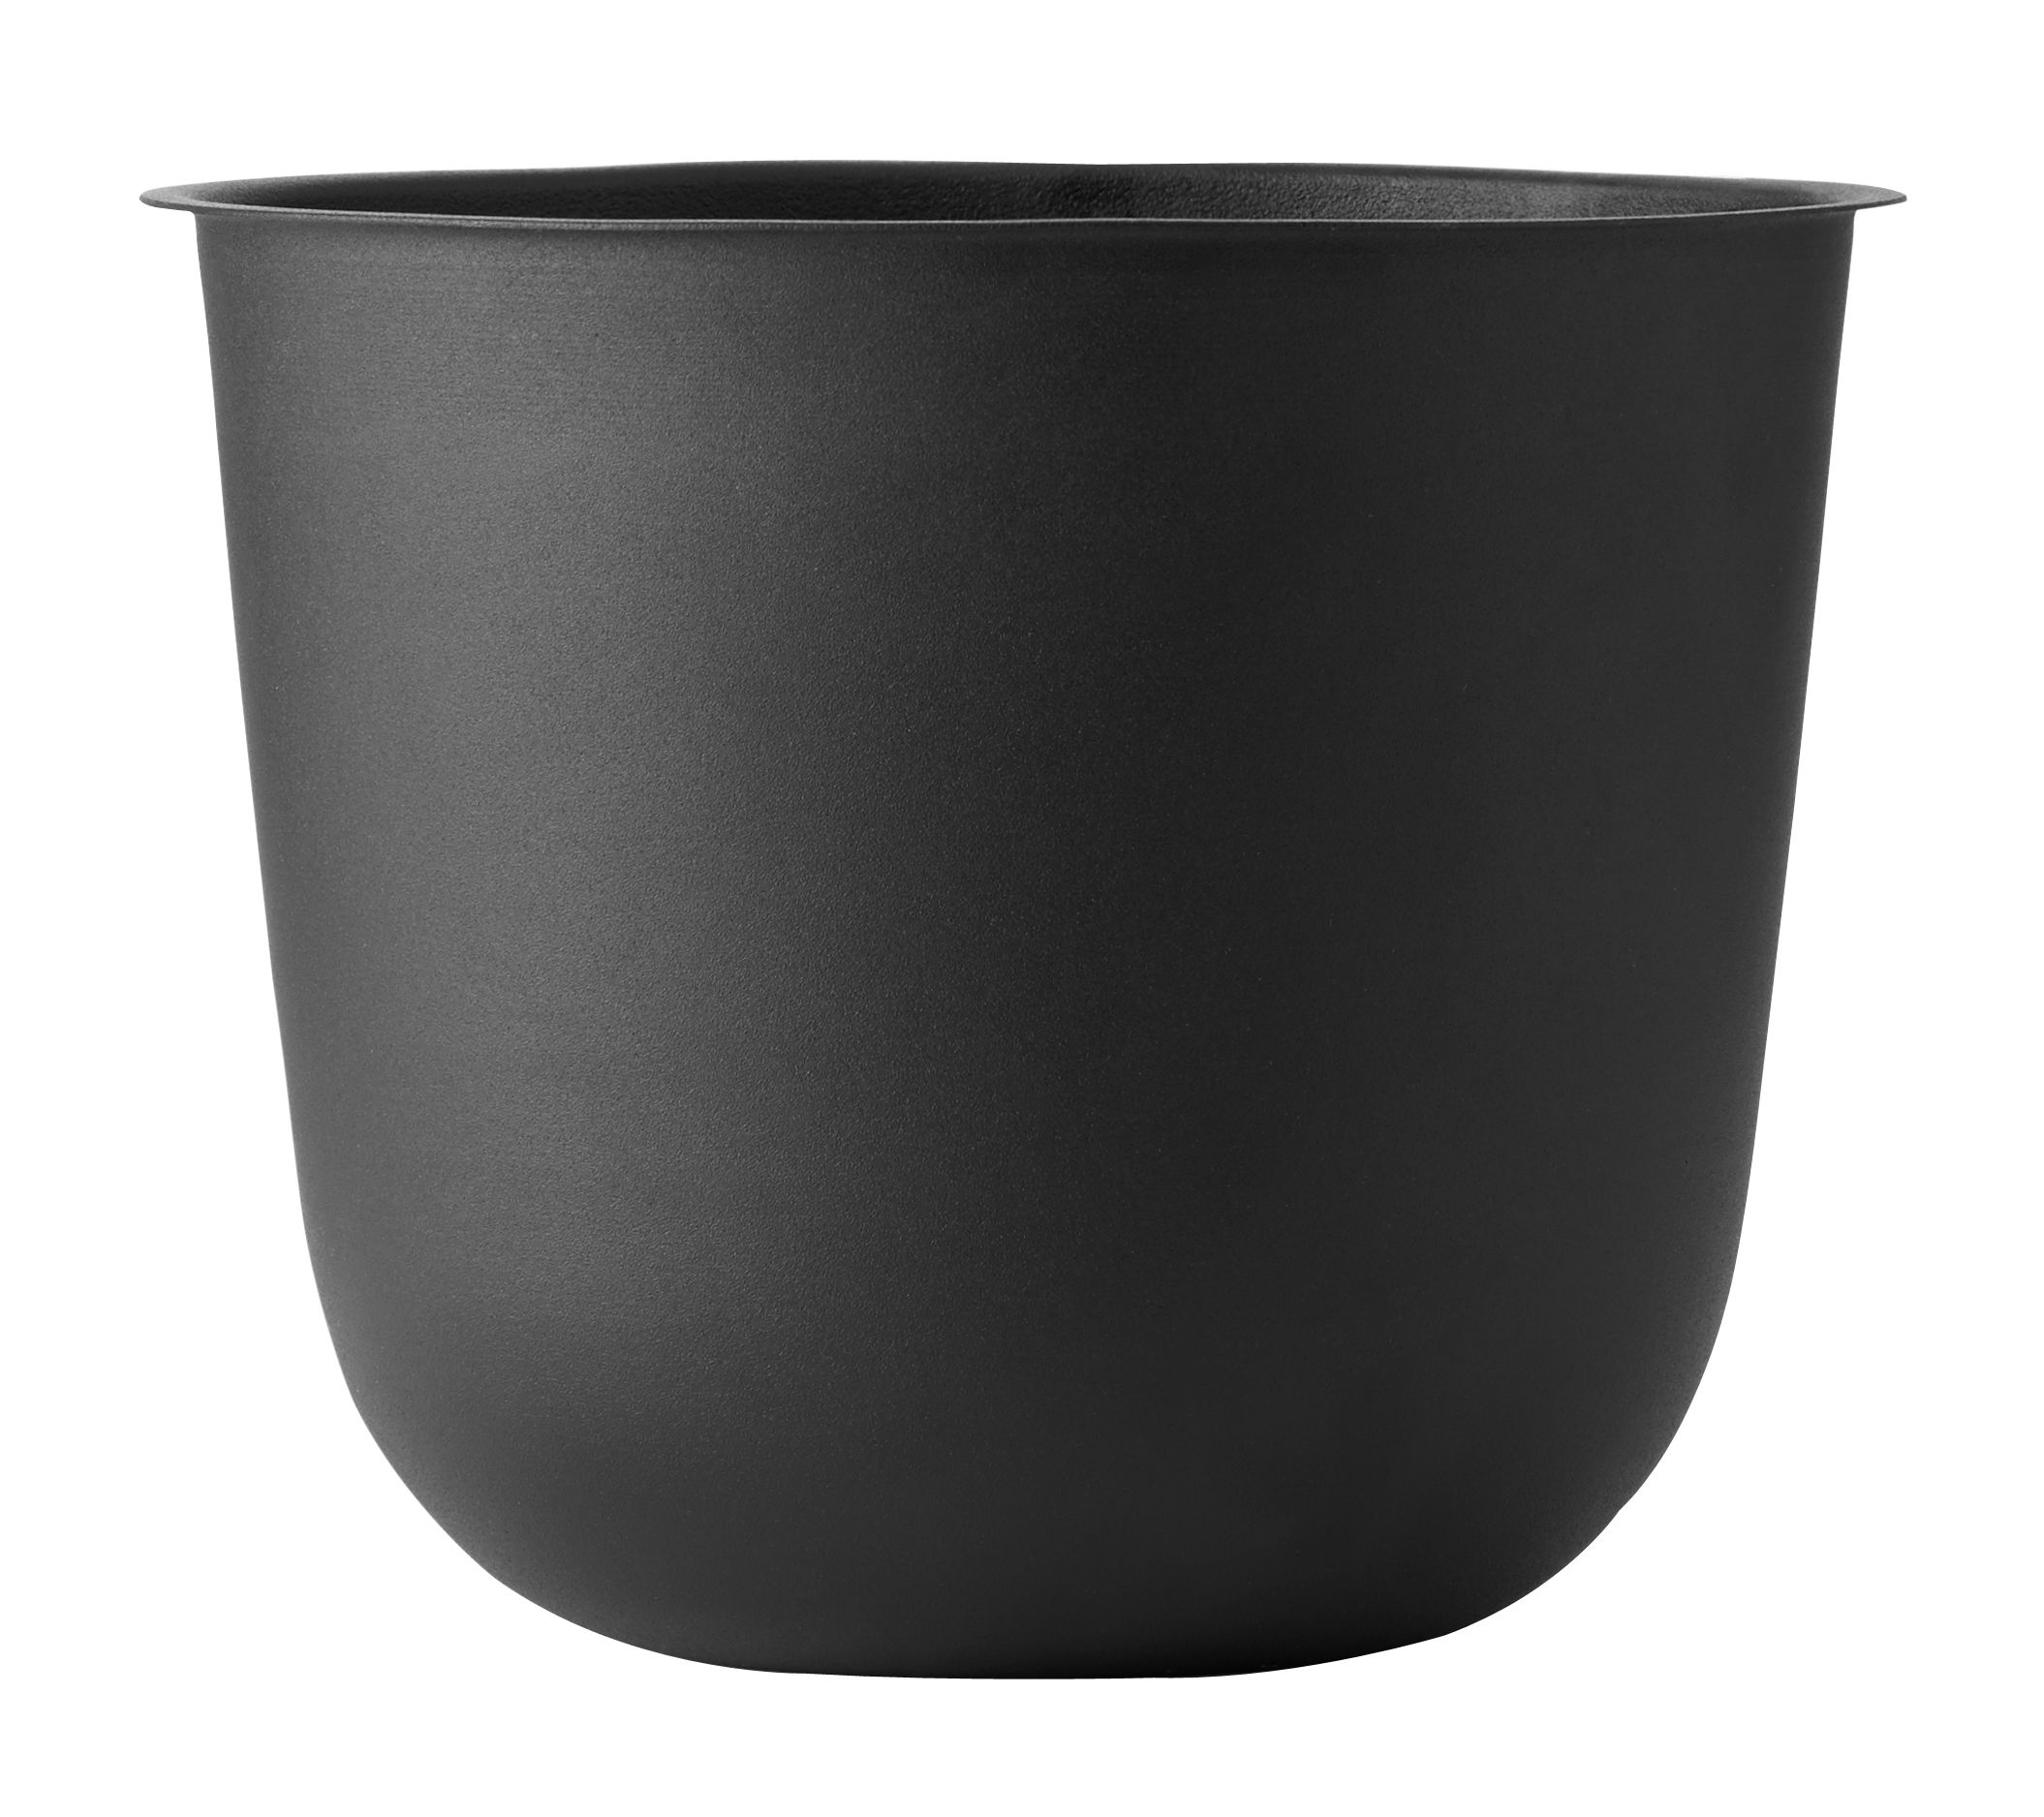 Outdoor - Pots & Plants - Wire Flowerpot - For Wire Base by Menu - Black - Mat laquered steel